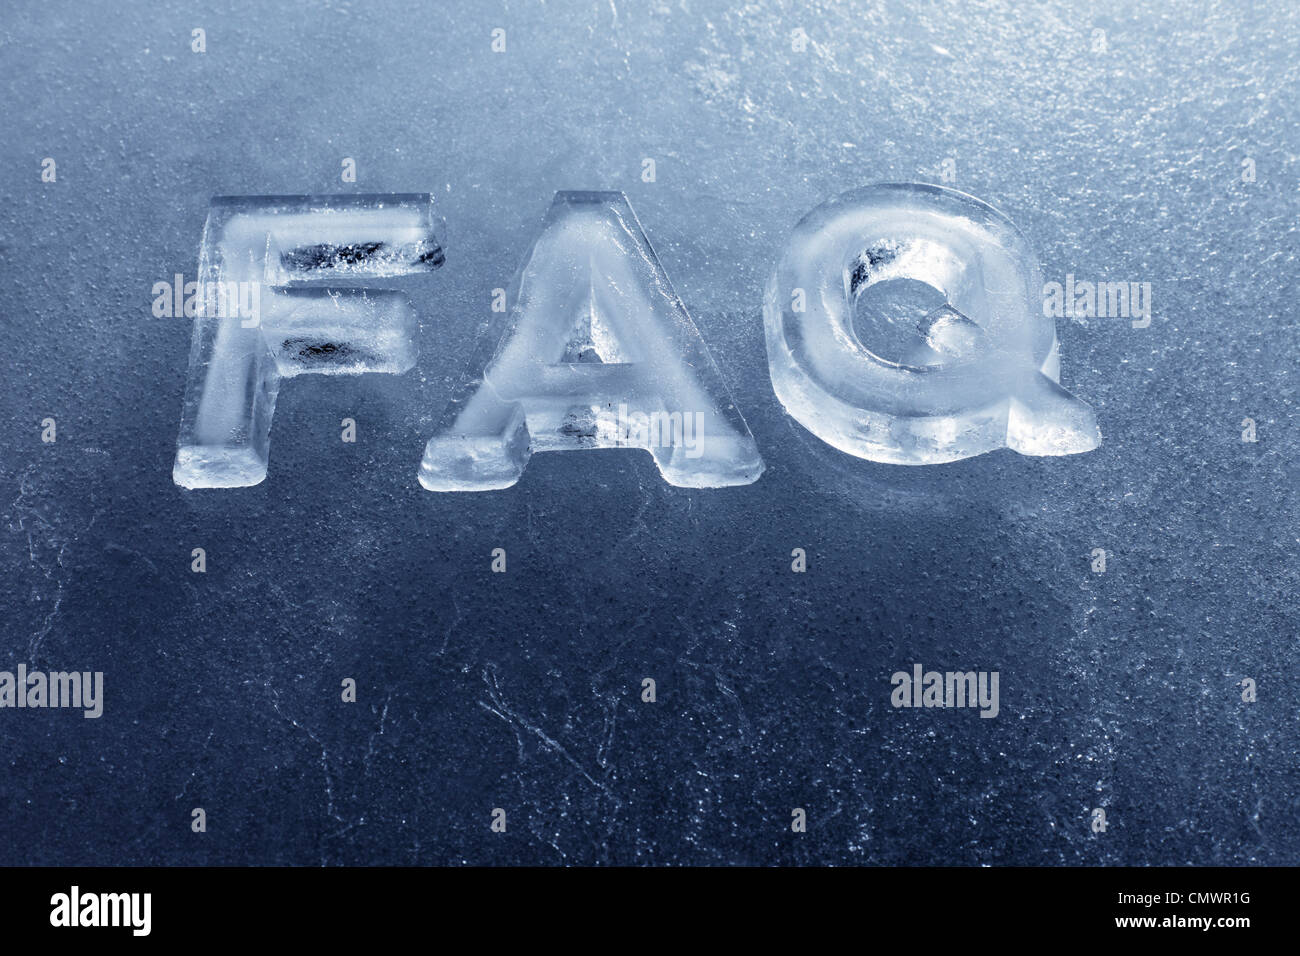 Abbreviation FAQ (Frequently Asked Questions) made of real ice letters. - Stock Image